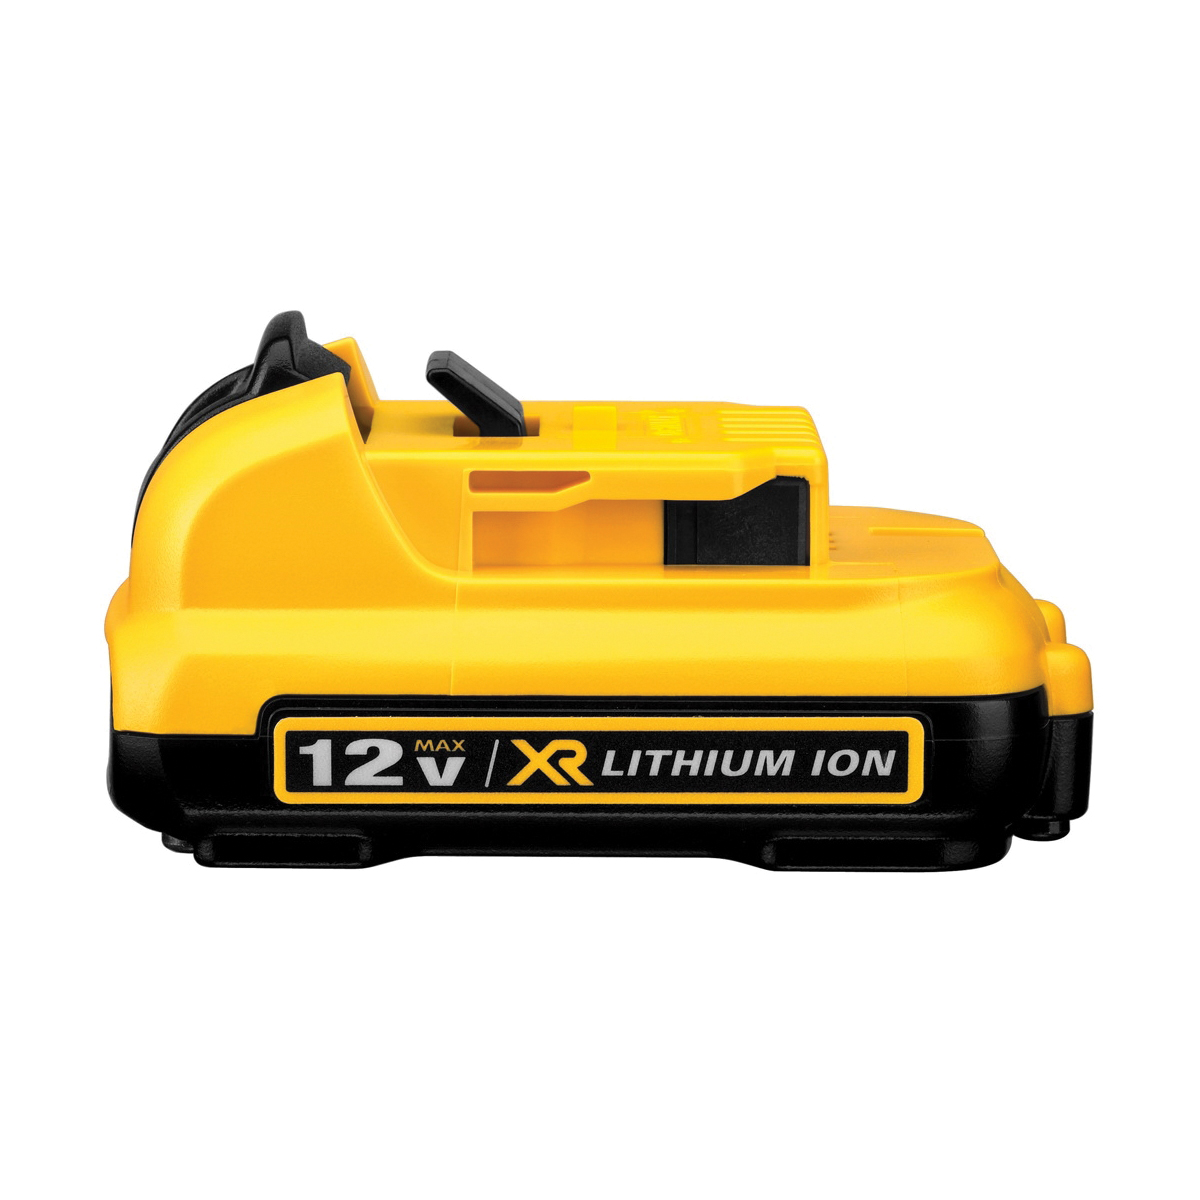 DeWALT® 12V MAX* DCB127 Slide-On Cordless Battery Pack, Lithium-Ion Battery, For Use With 12 V Max Tools